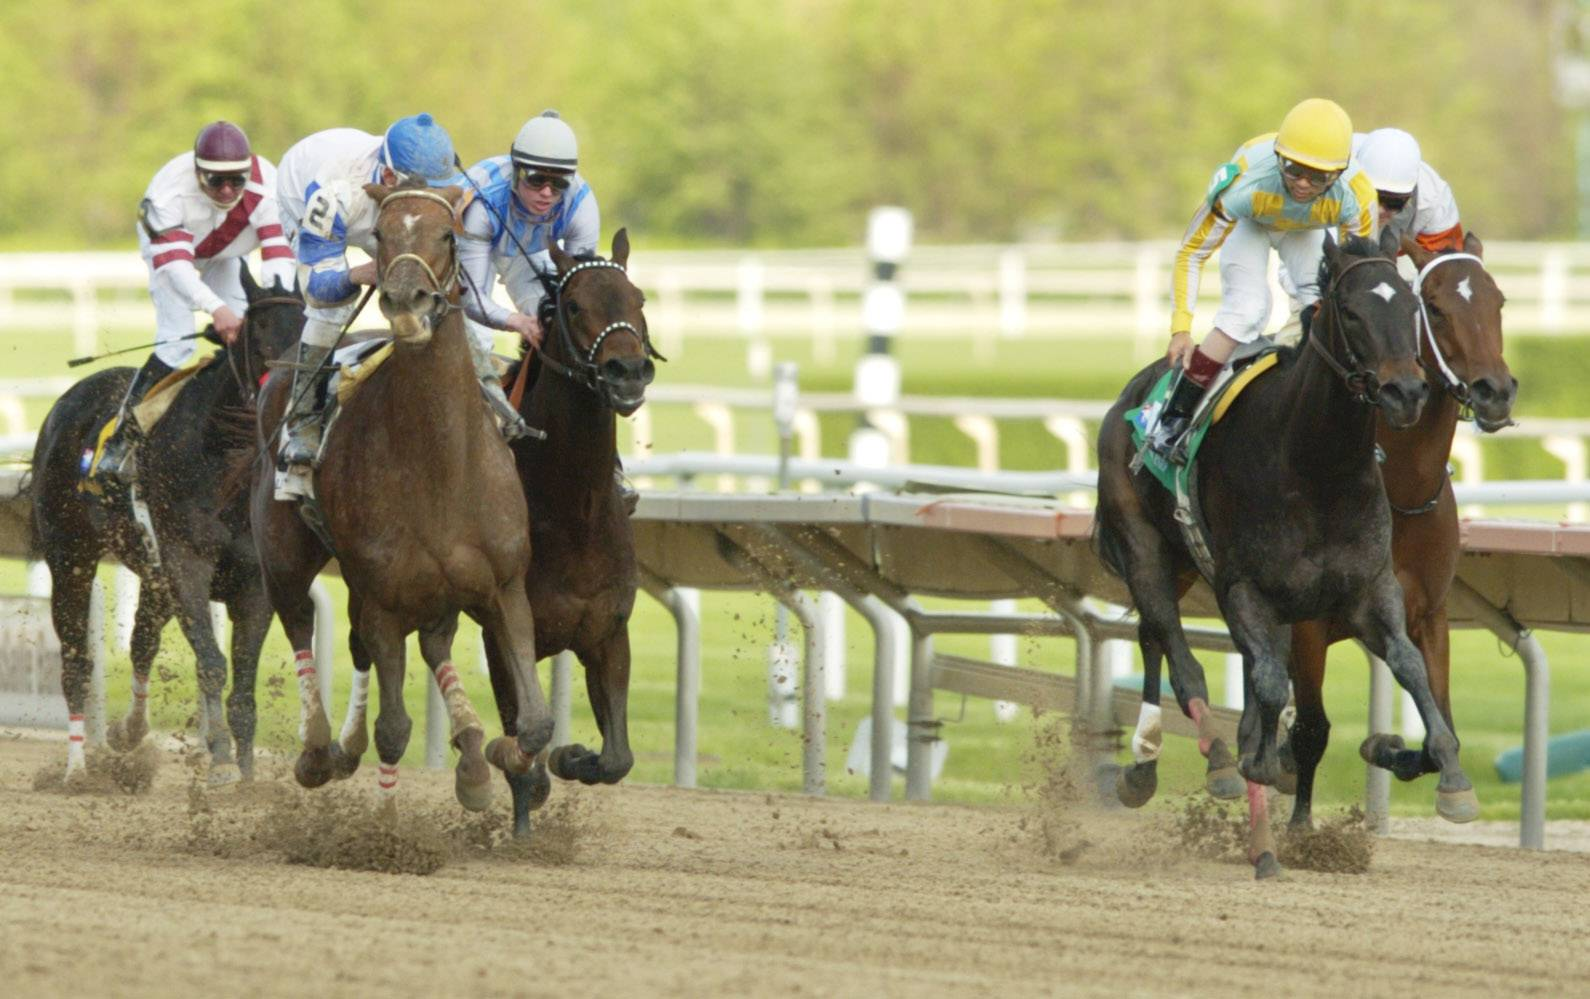 Horse racing is part of the fun at the Mother's Day celebration at Arlington International Racecourse in Arlington Heights.